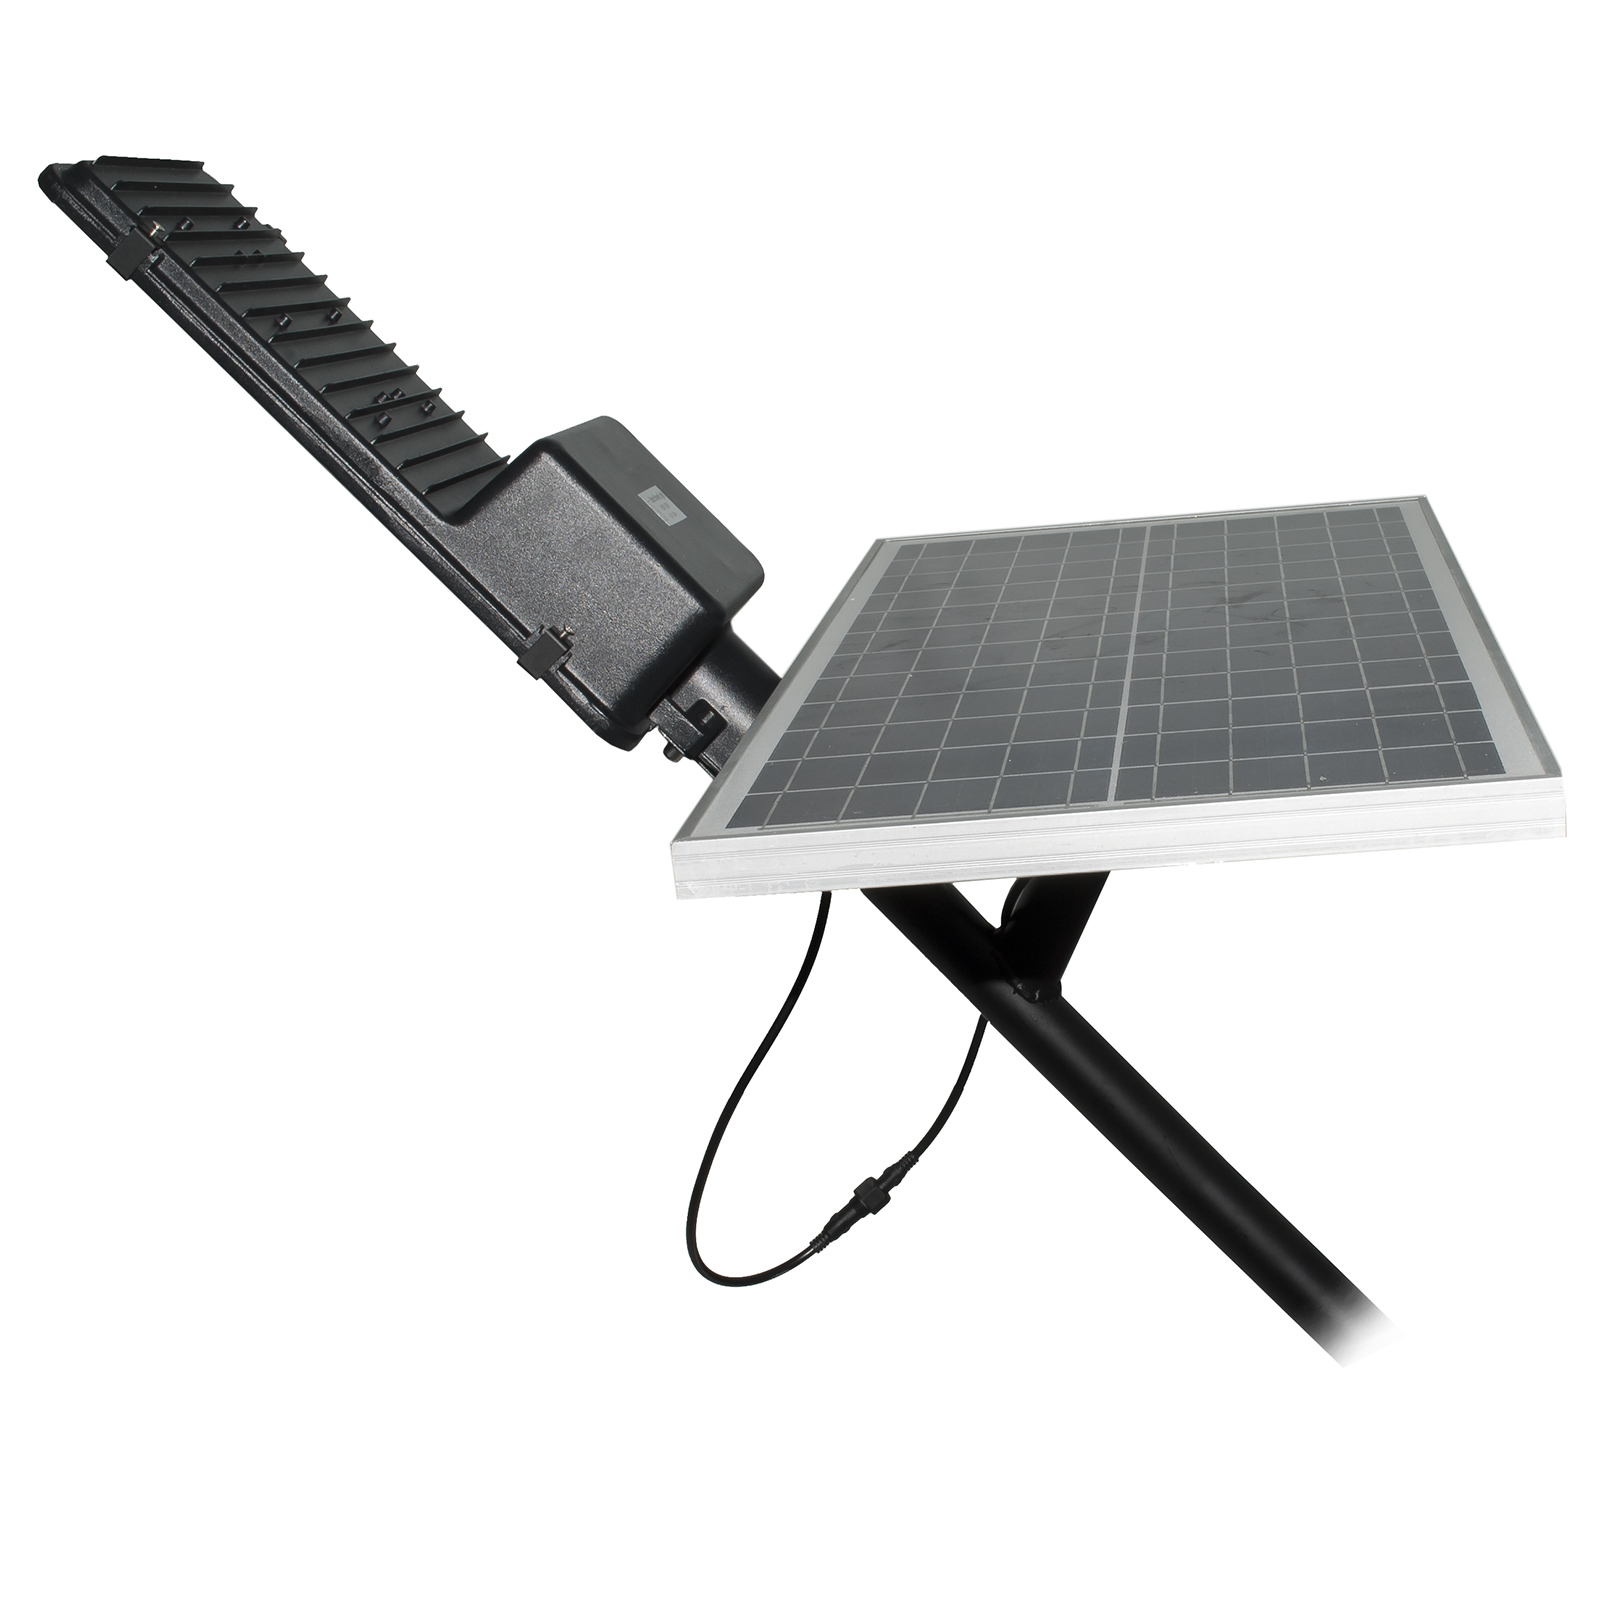 Lighthouse road led streetlight twilight 150W solar panel IP65 dimmable